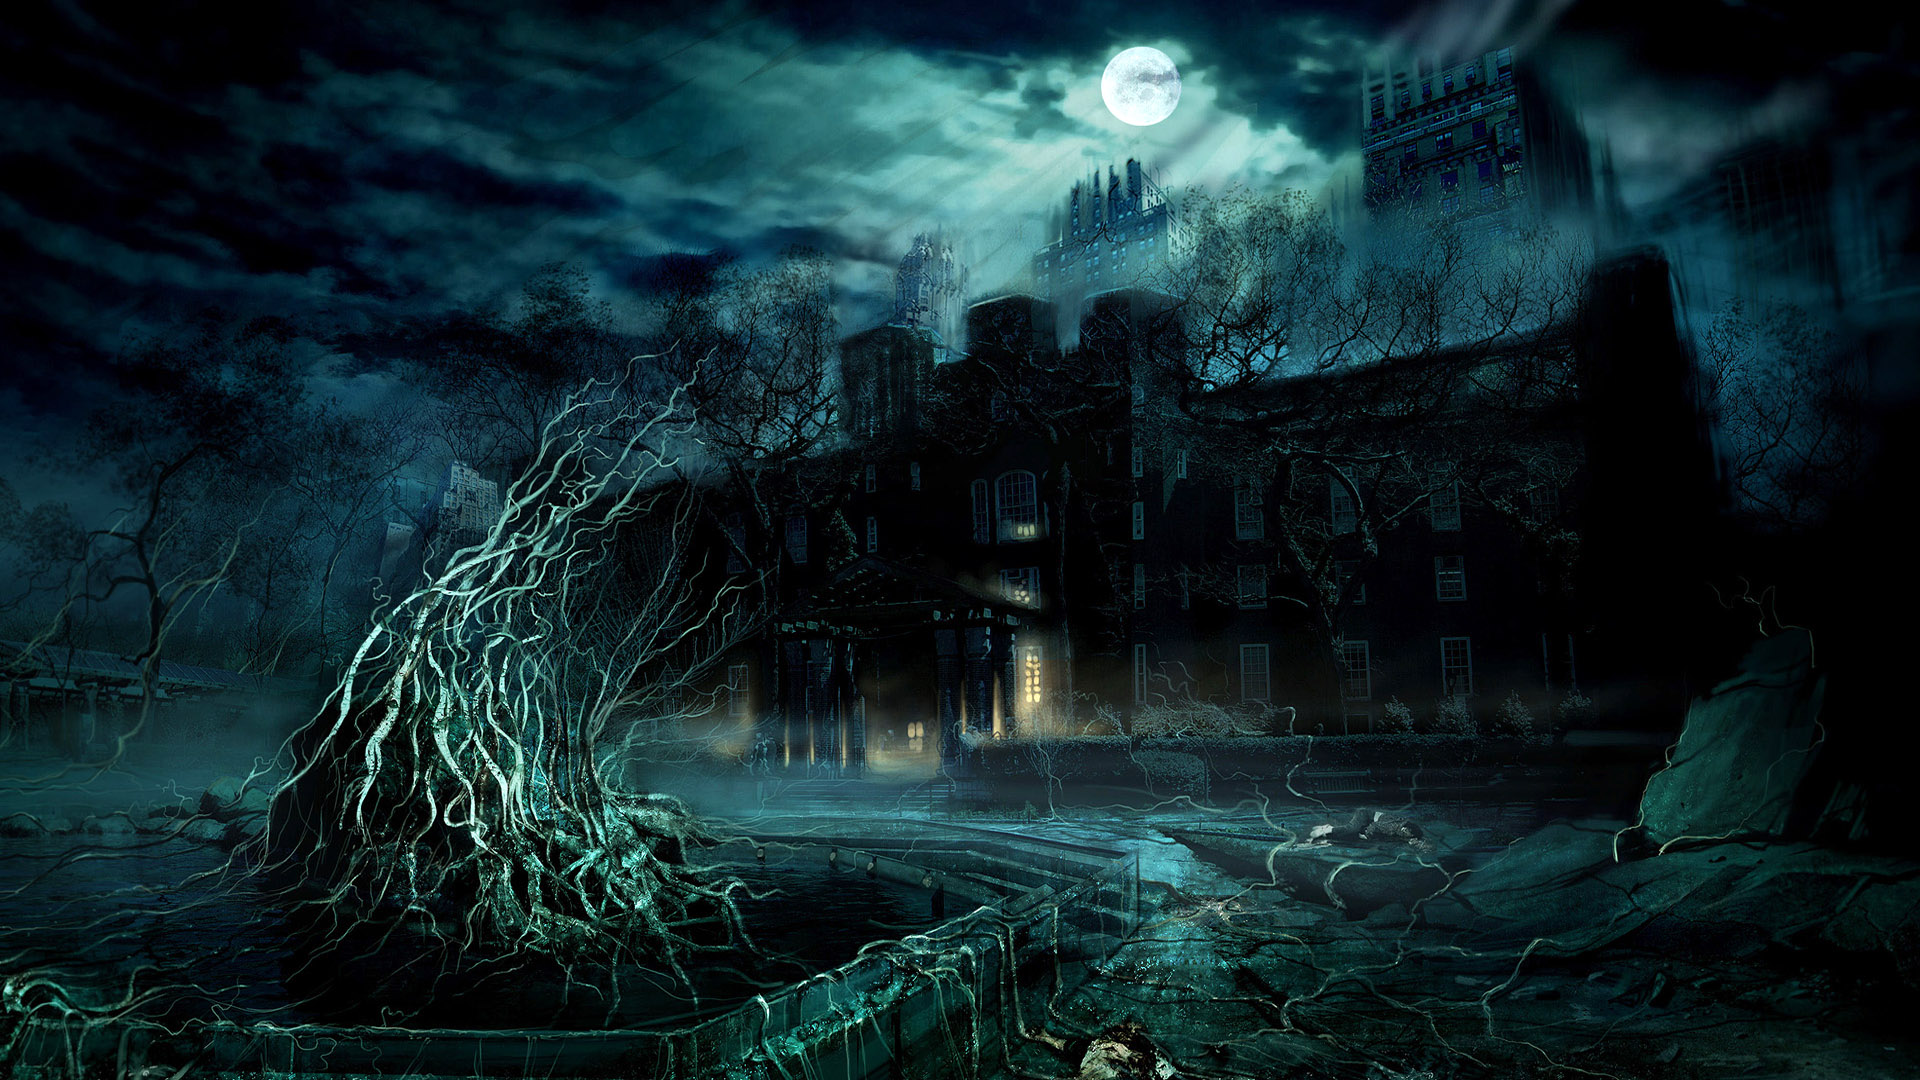 http://images.psxextreme.com/wallpapers/ps3/haunted_mansion_536.jpg